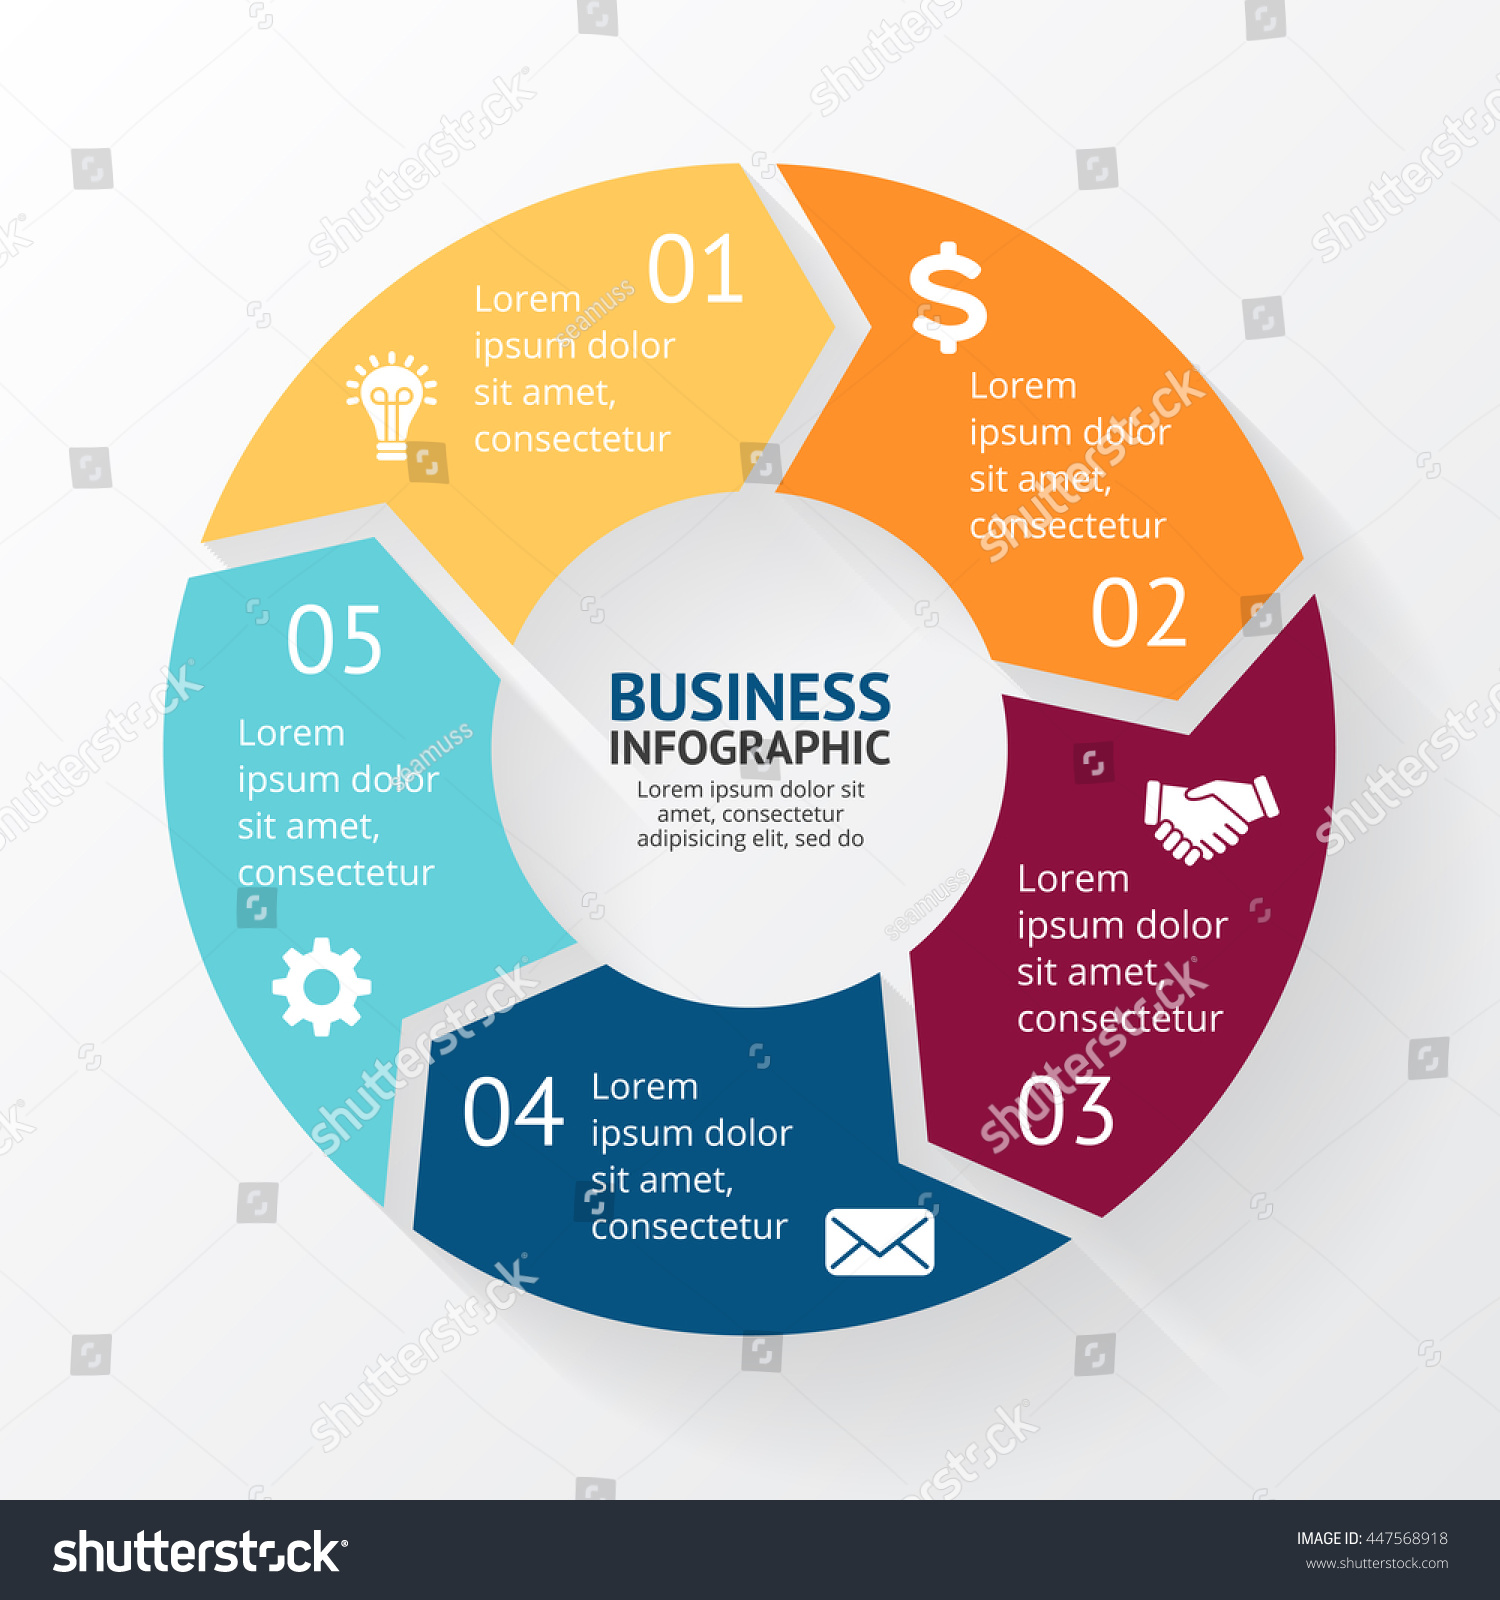 Process cycling arrow by arrow royalty free stock images image - Vector Circle Arrows Infographic Cycle Diagram Round Graph Presentation Chart Business Concept